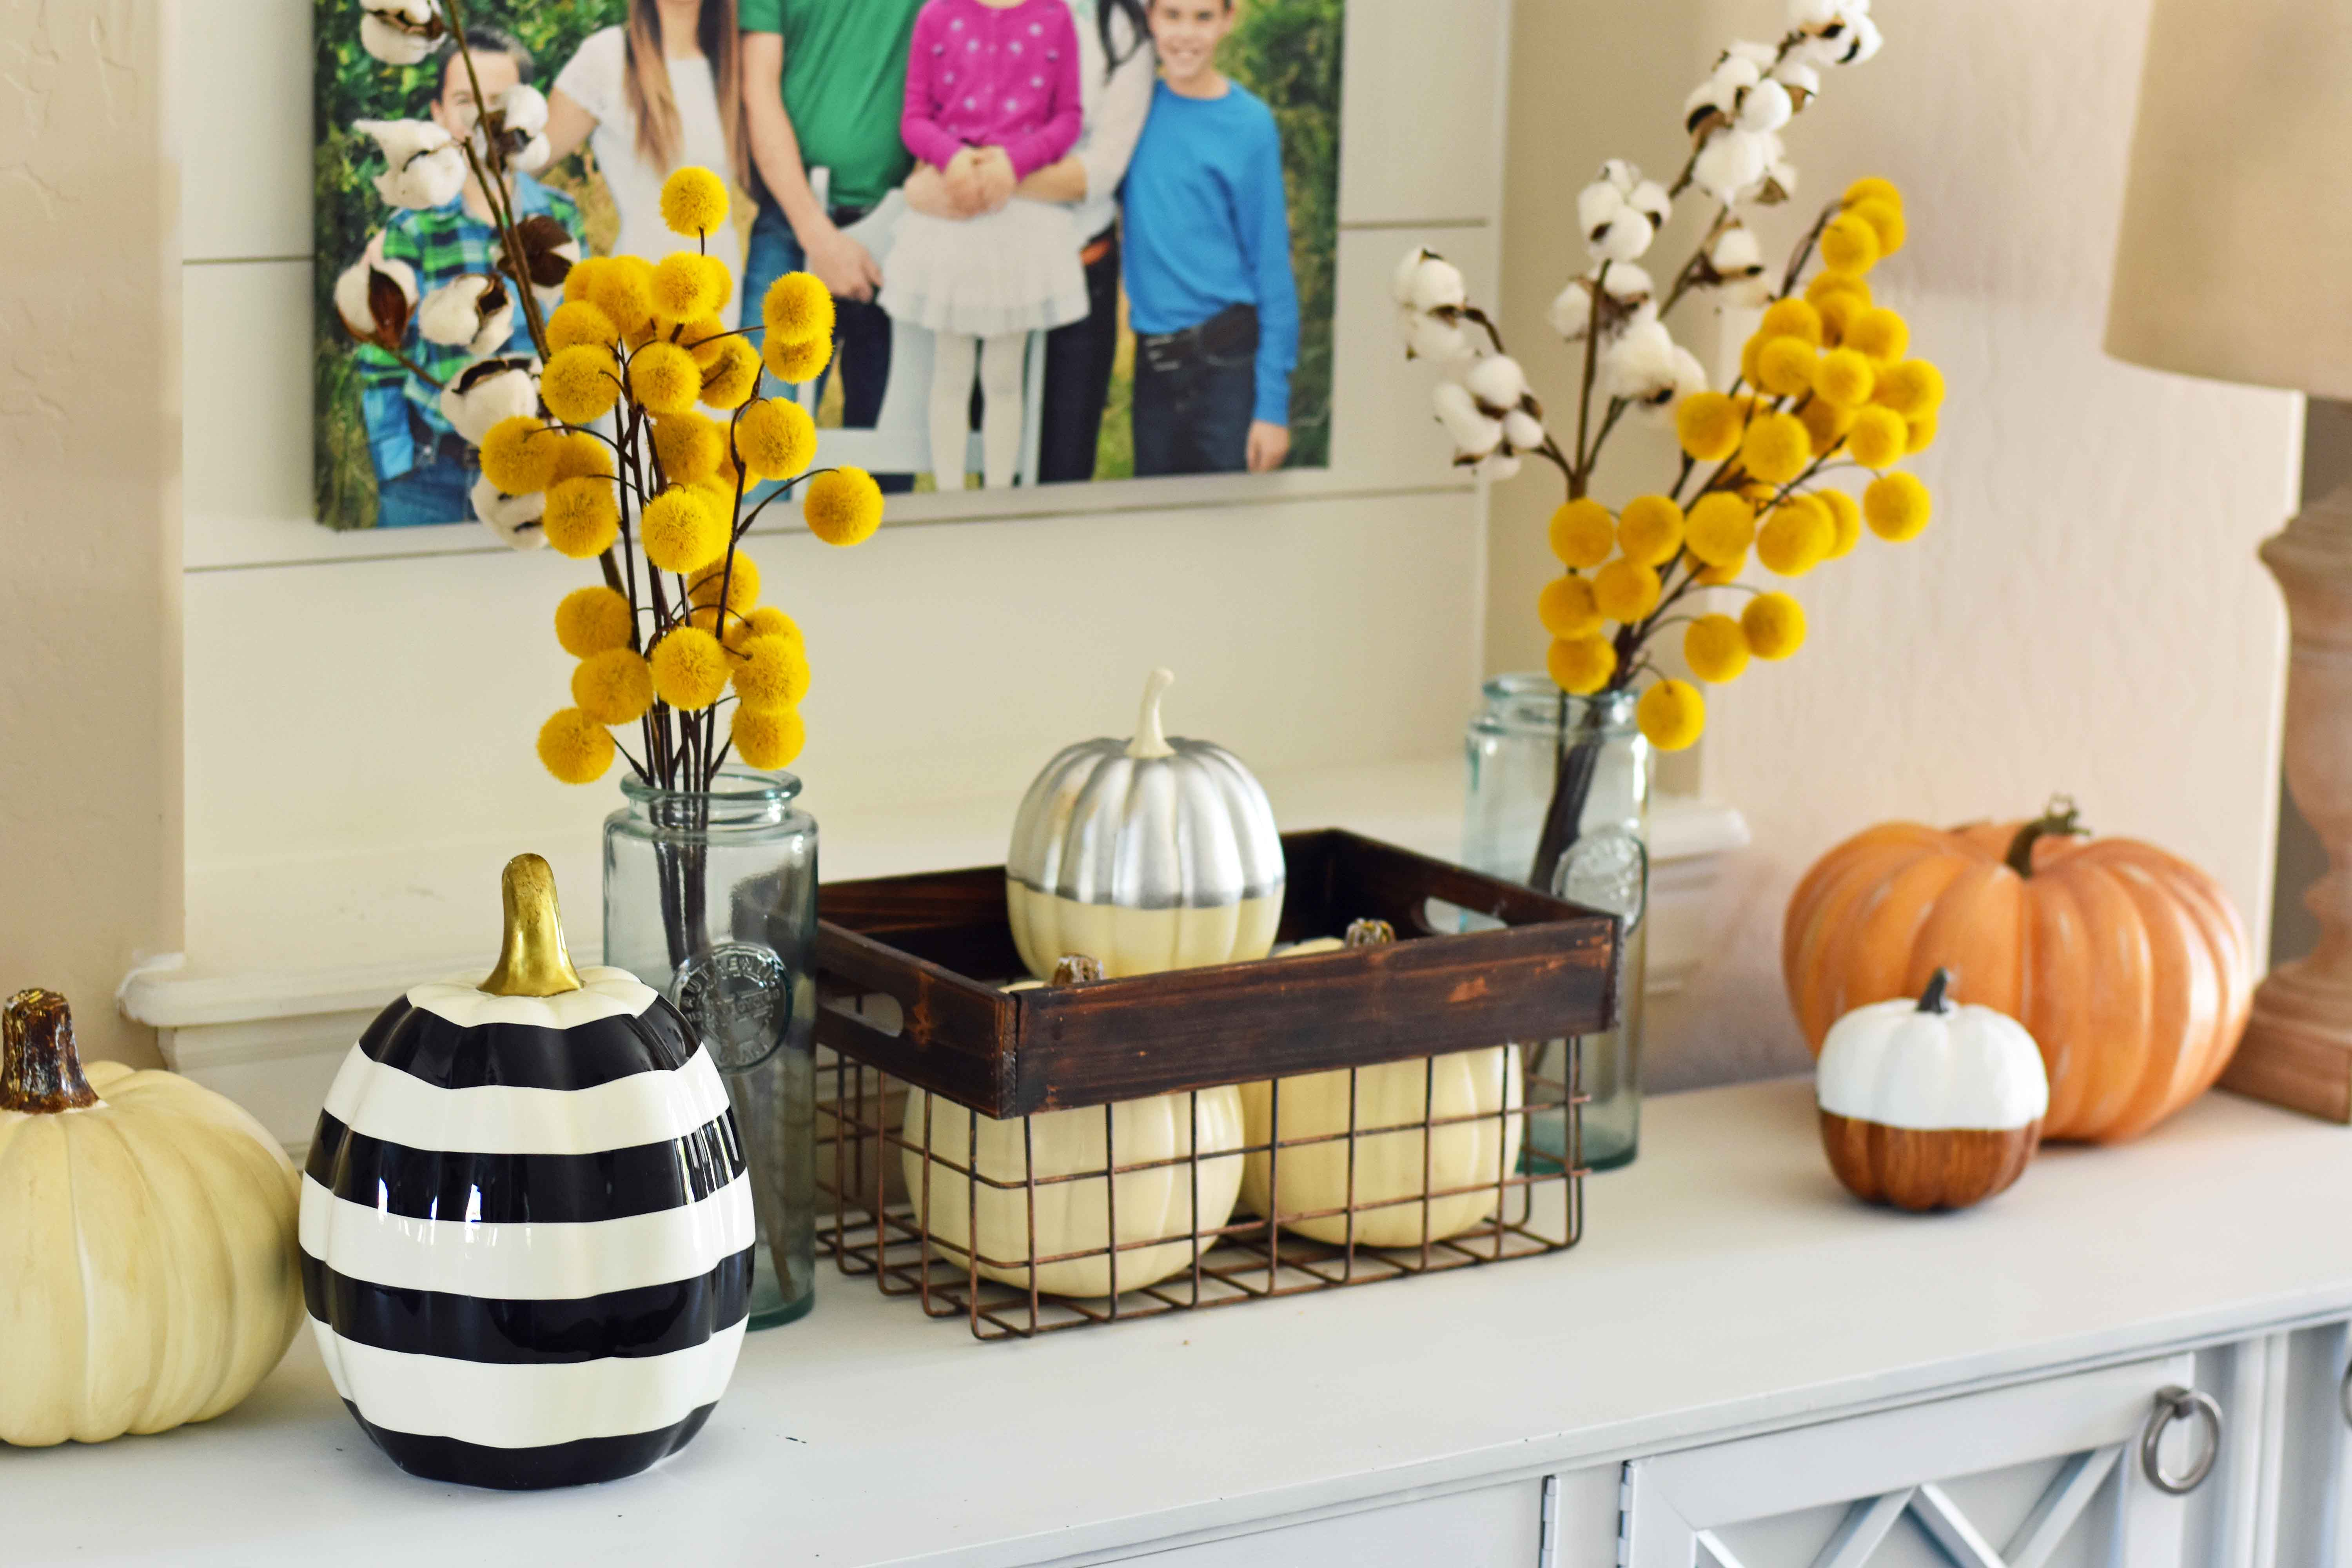 Fall Entry Decor Ideas. Craspedia Yellow Billy Ball Flowers in vintage vases. White pumpkins in wire baskets. Black and white striped pumpkin. Natural lamps, white entry table, and fall decor. Fixer Upper cotton ball stems. How to decorate your home for Fall.